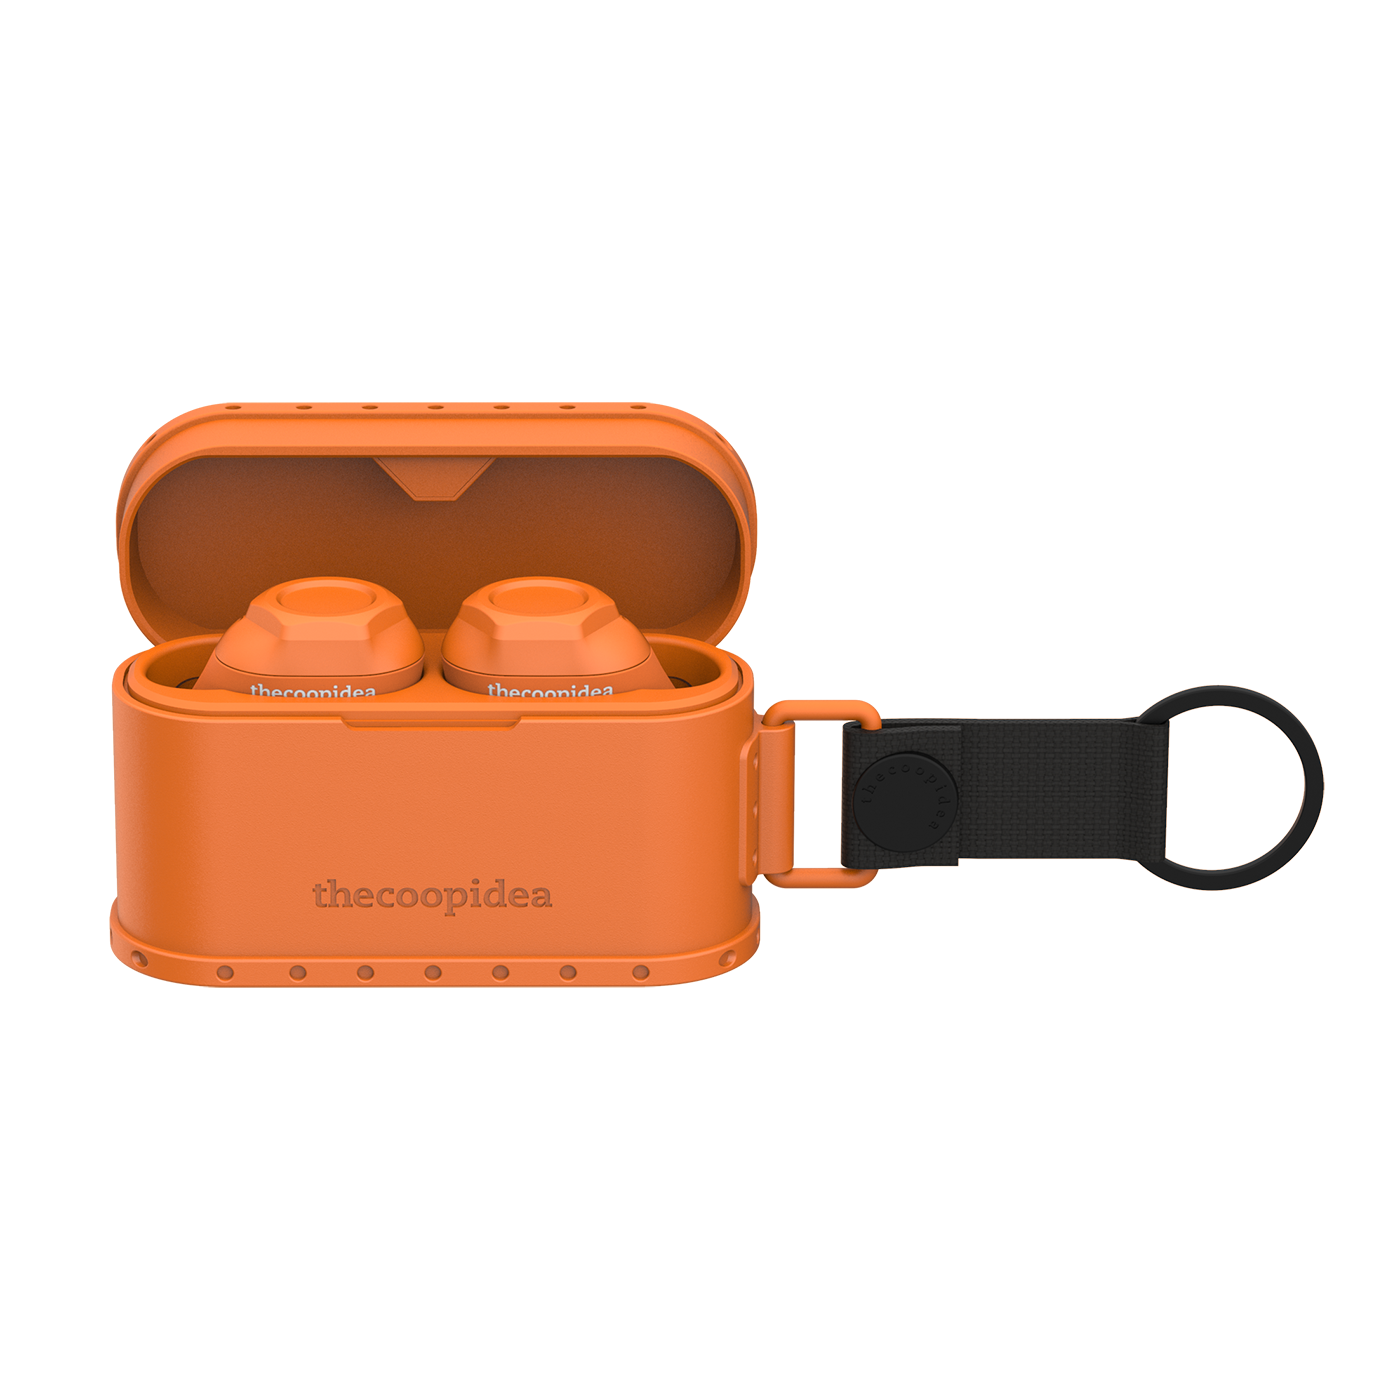 thecoopidea - CARGO 02 True Wireless Earbuds- Tangerine